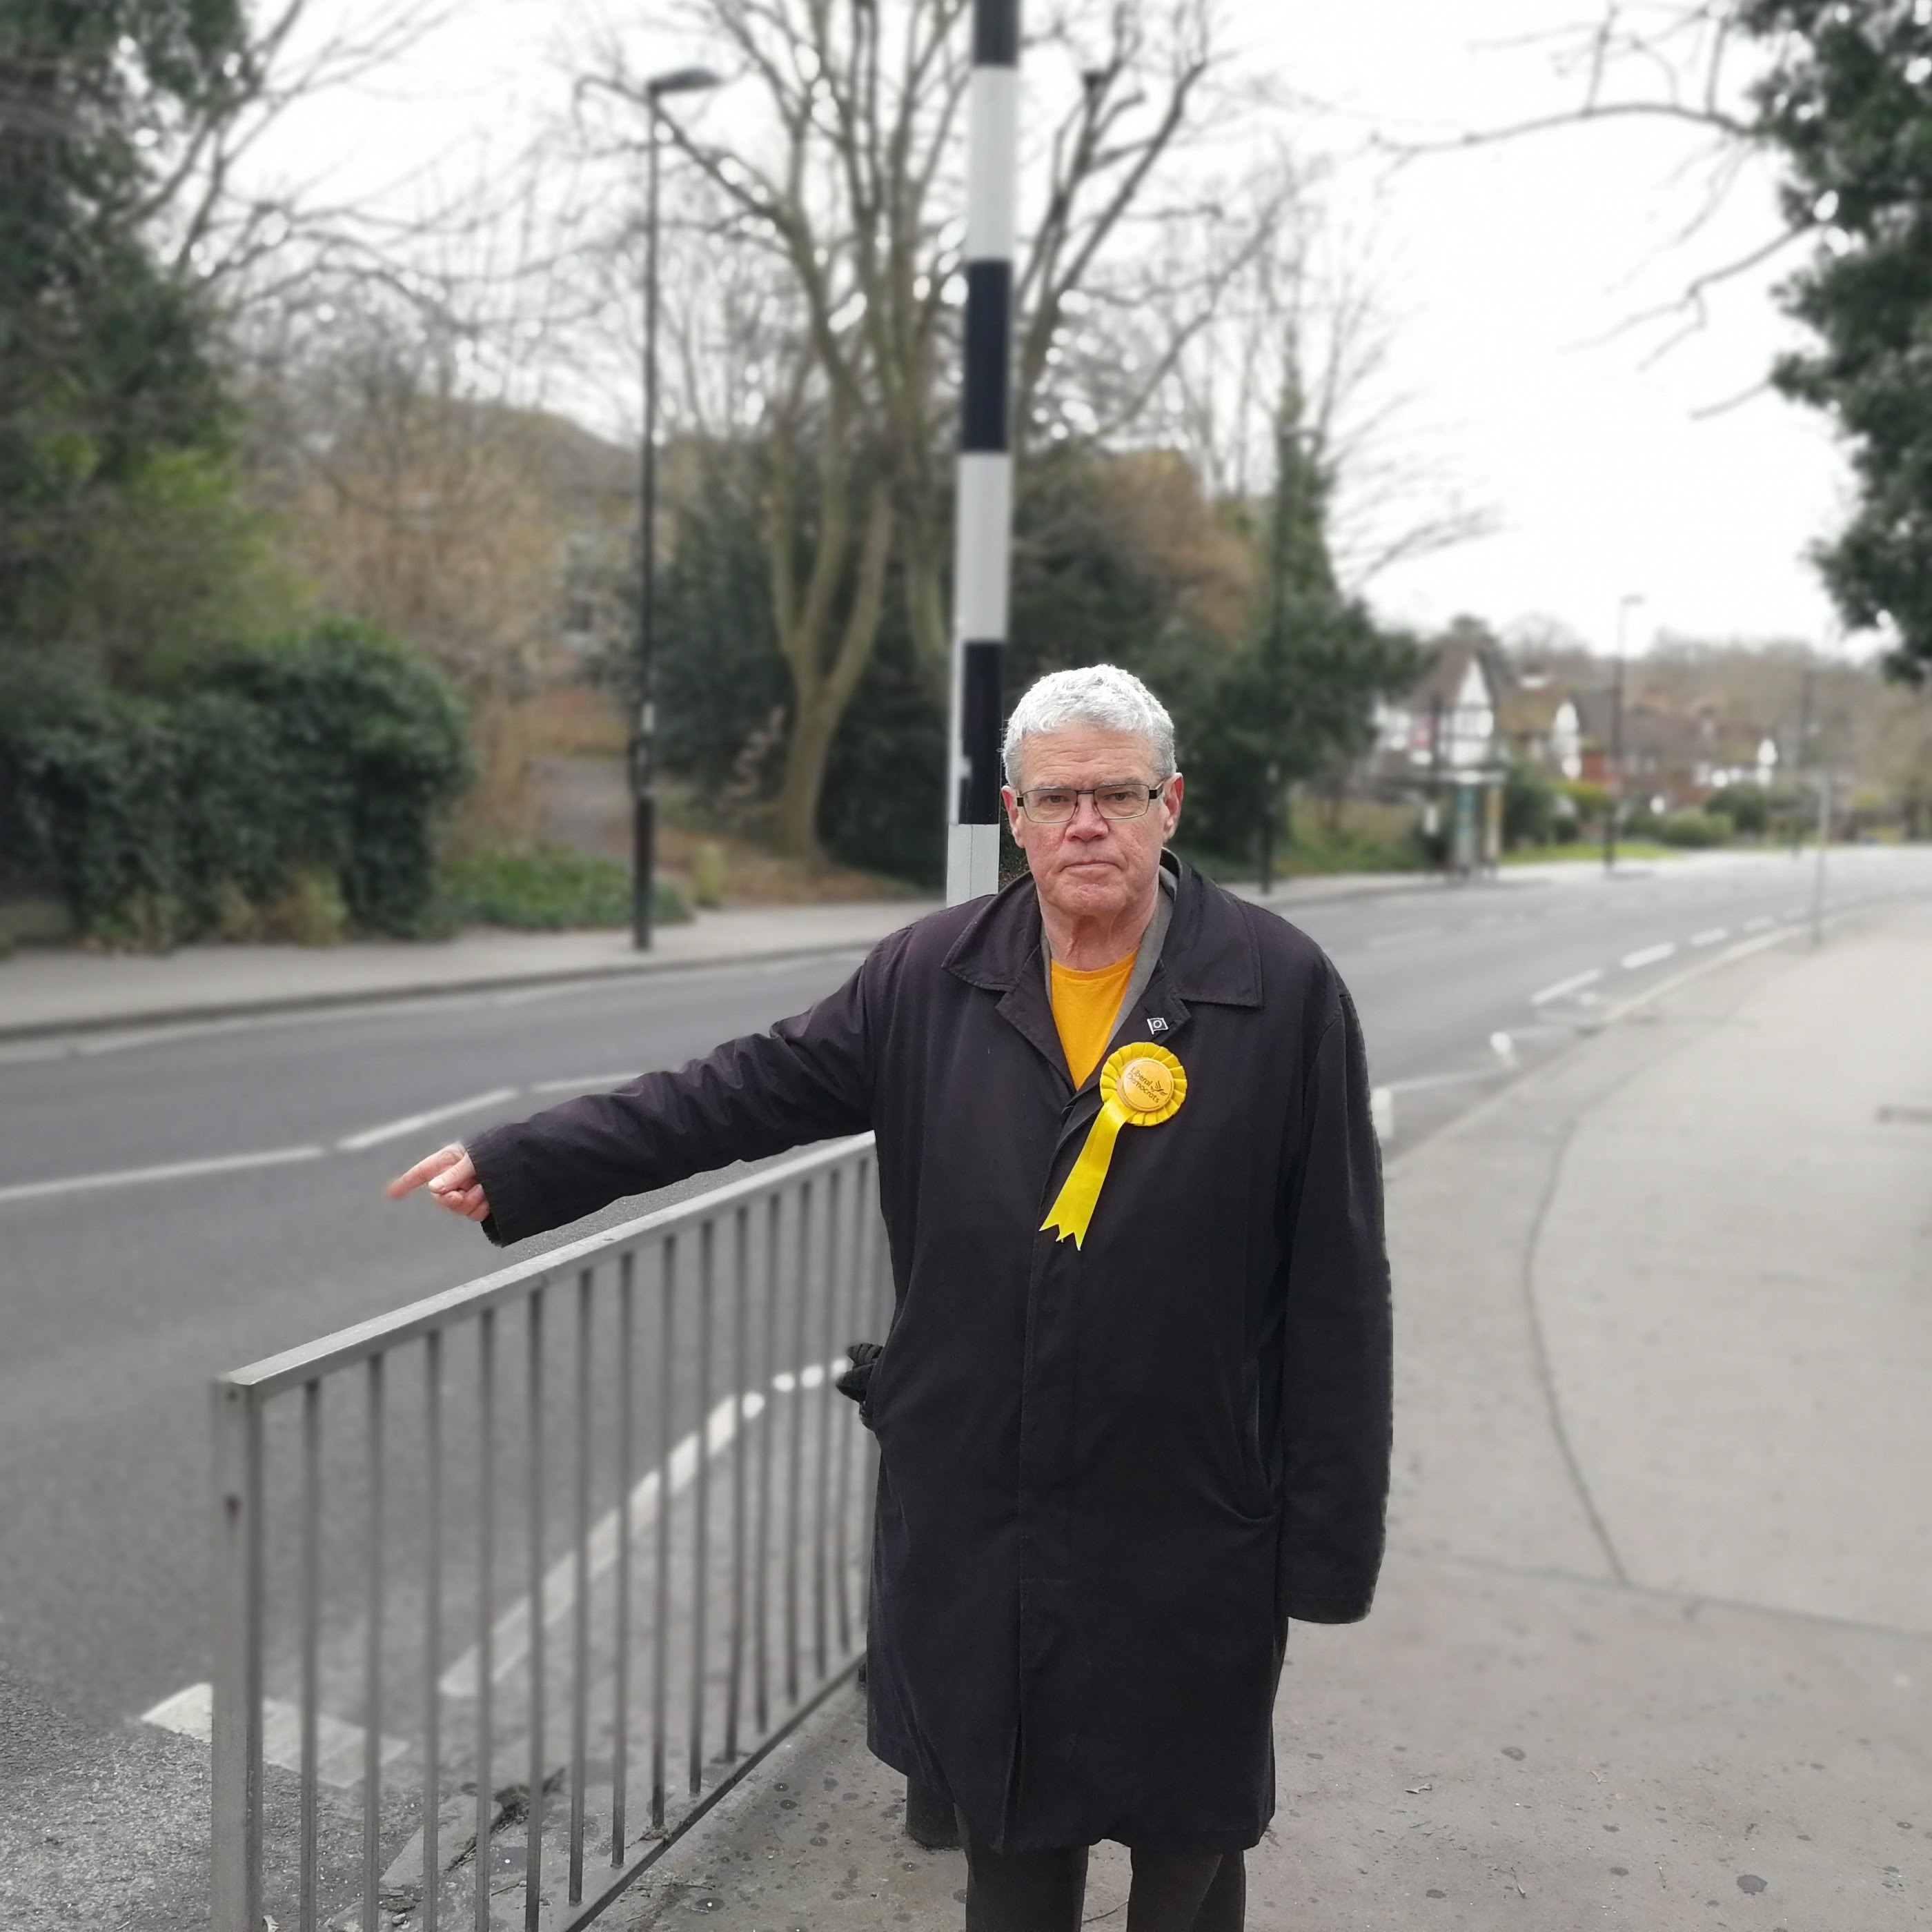 Robert Williams campaigning for safer pedestrian crossings in Park Hill